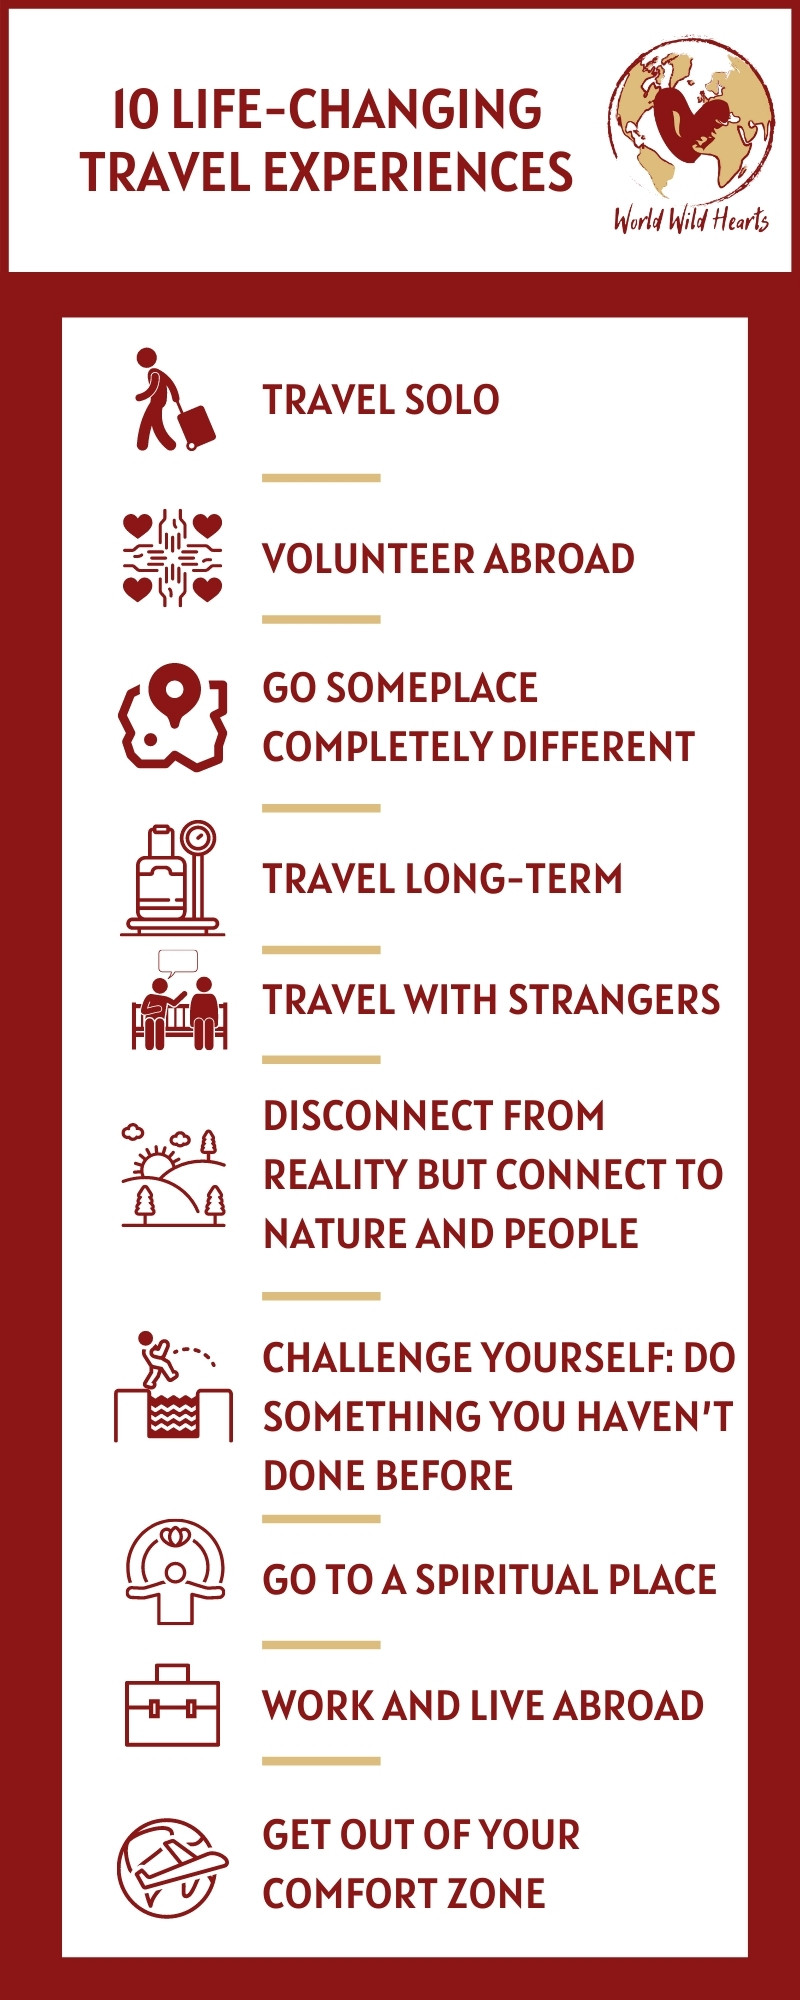 10 travel experiences that will change you forever infographic